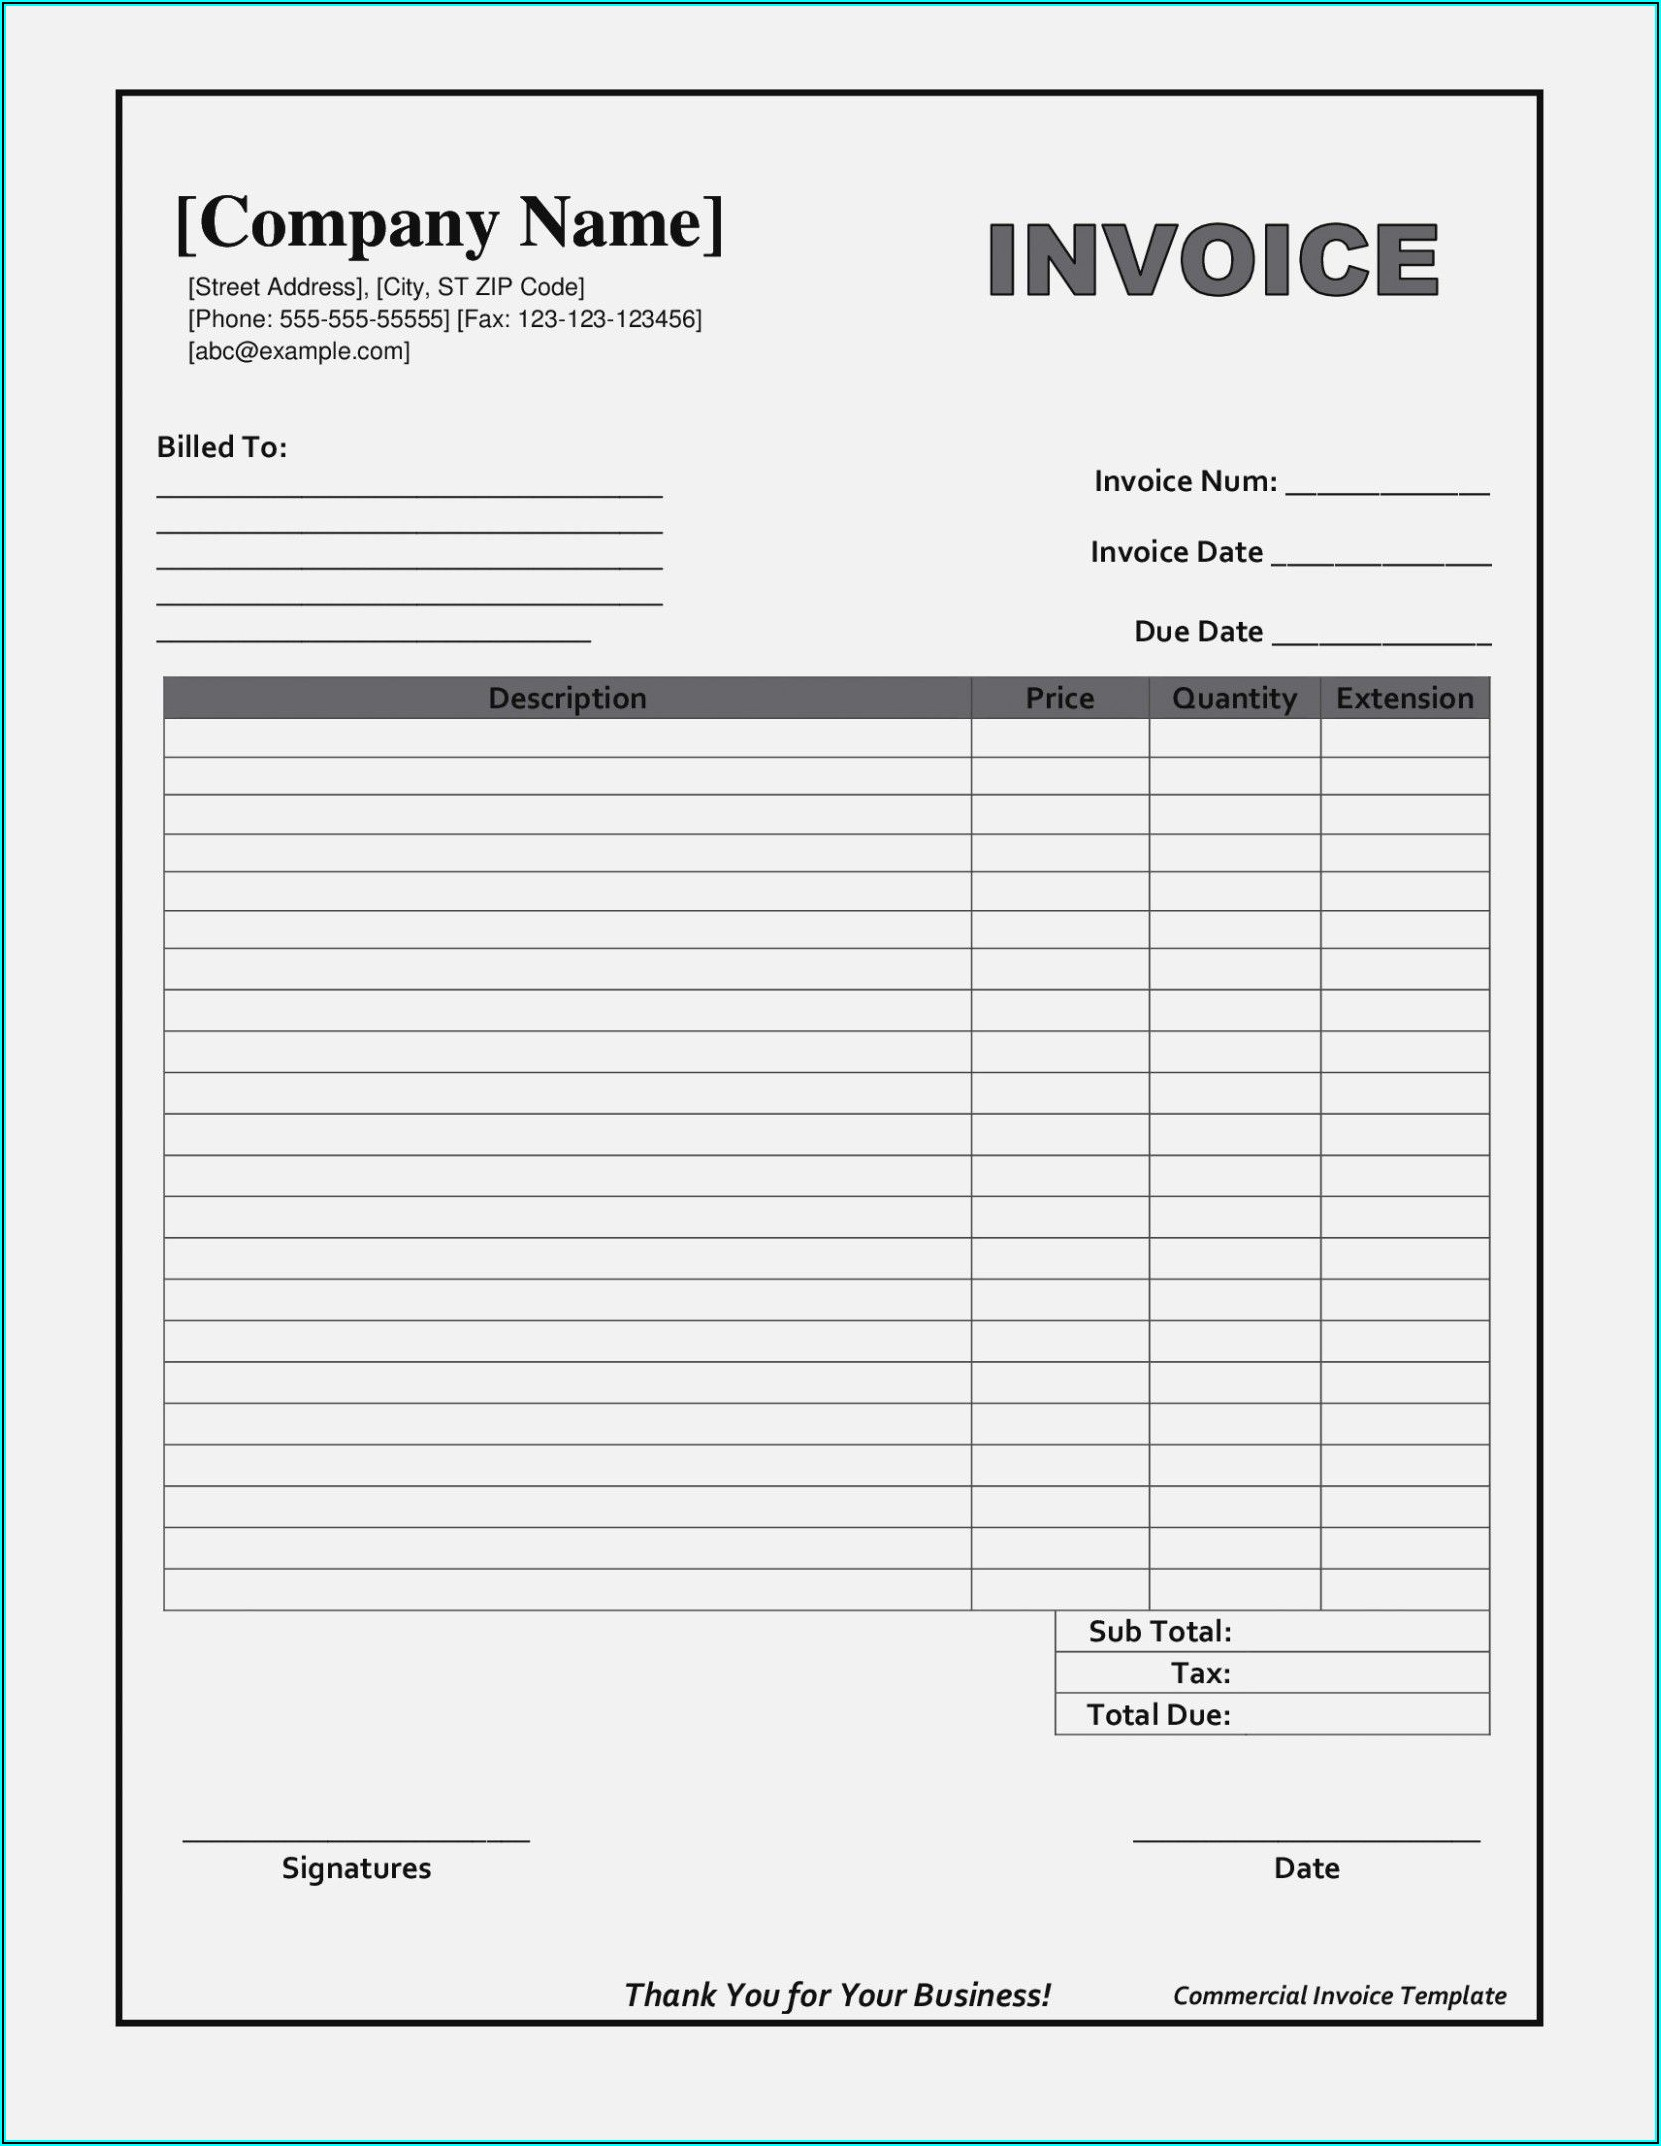 Printable Invoice Forms